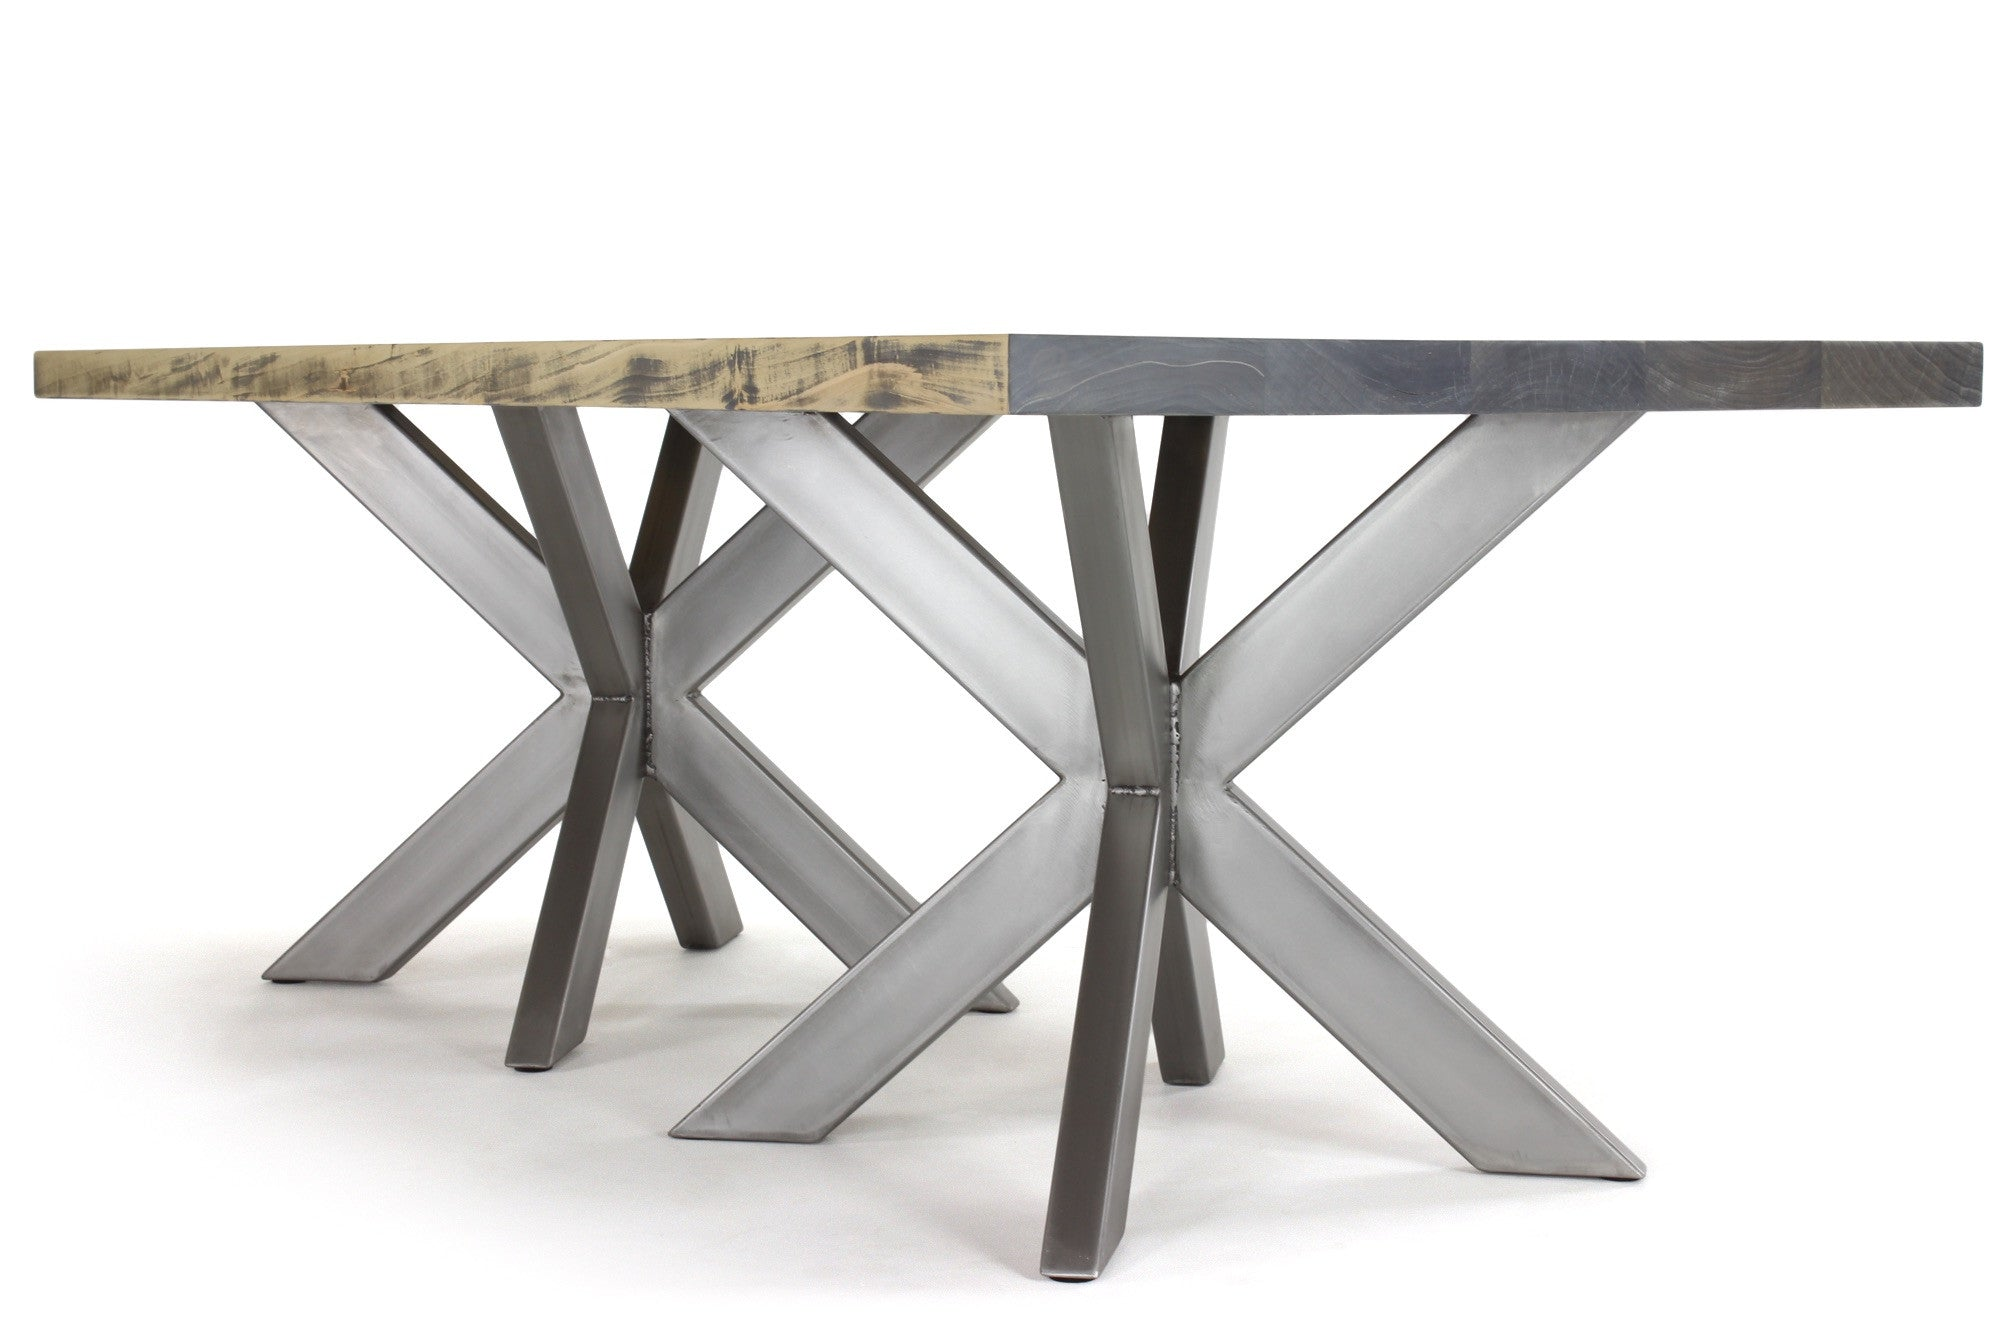 7' double jak dining table | worn maple wood finish with stainless steel